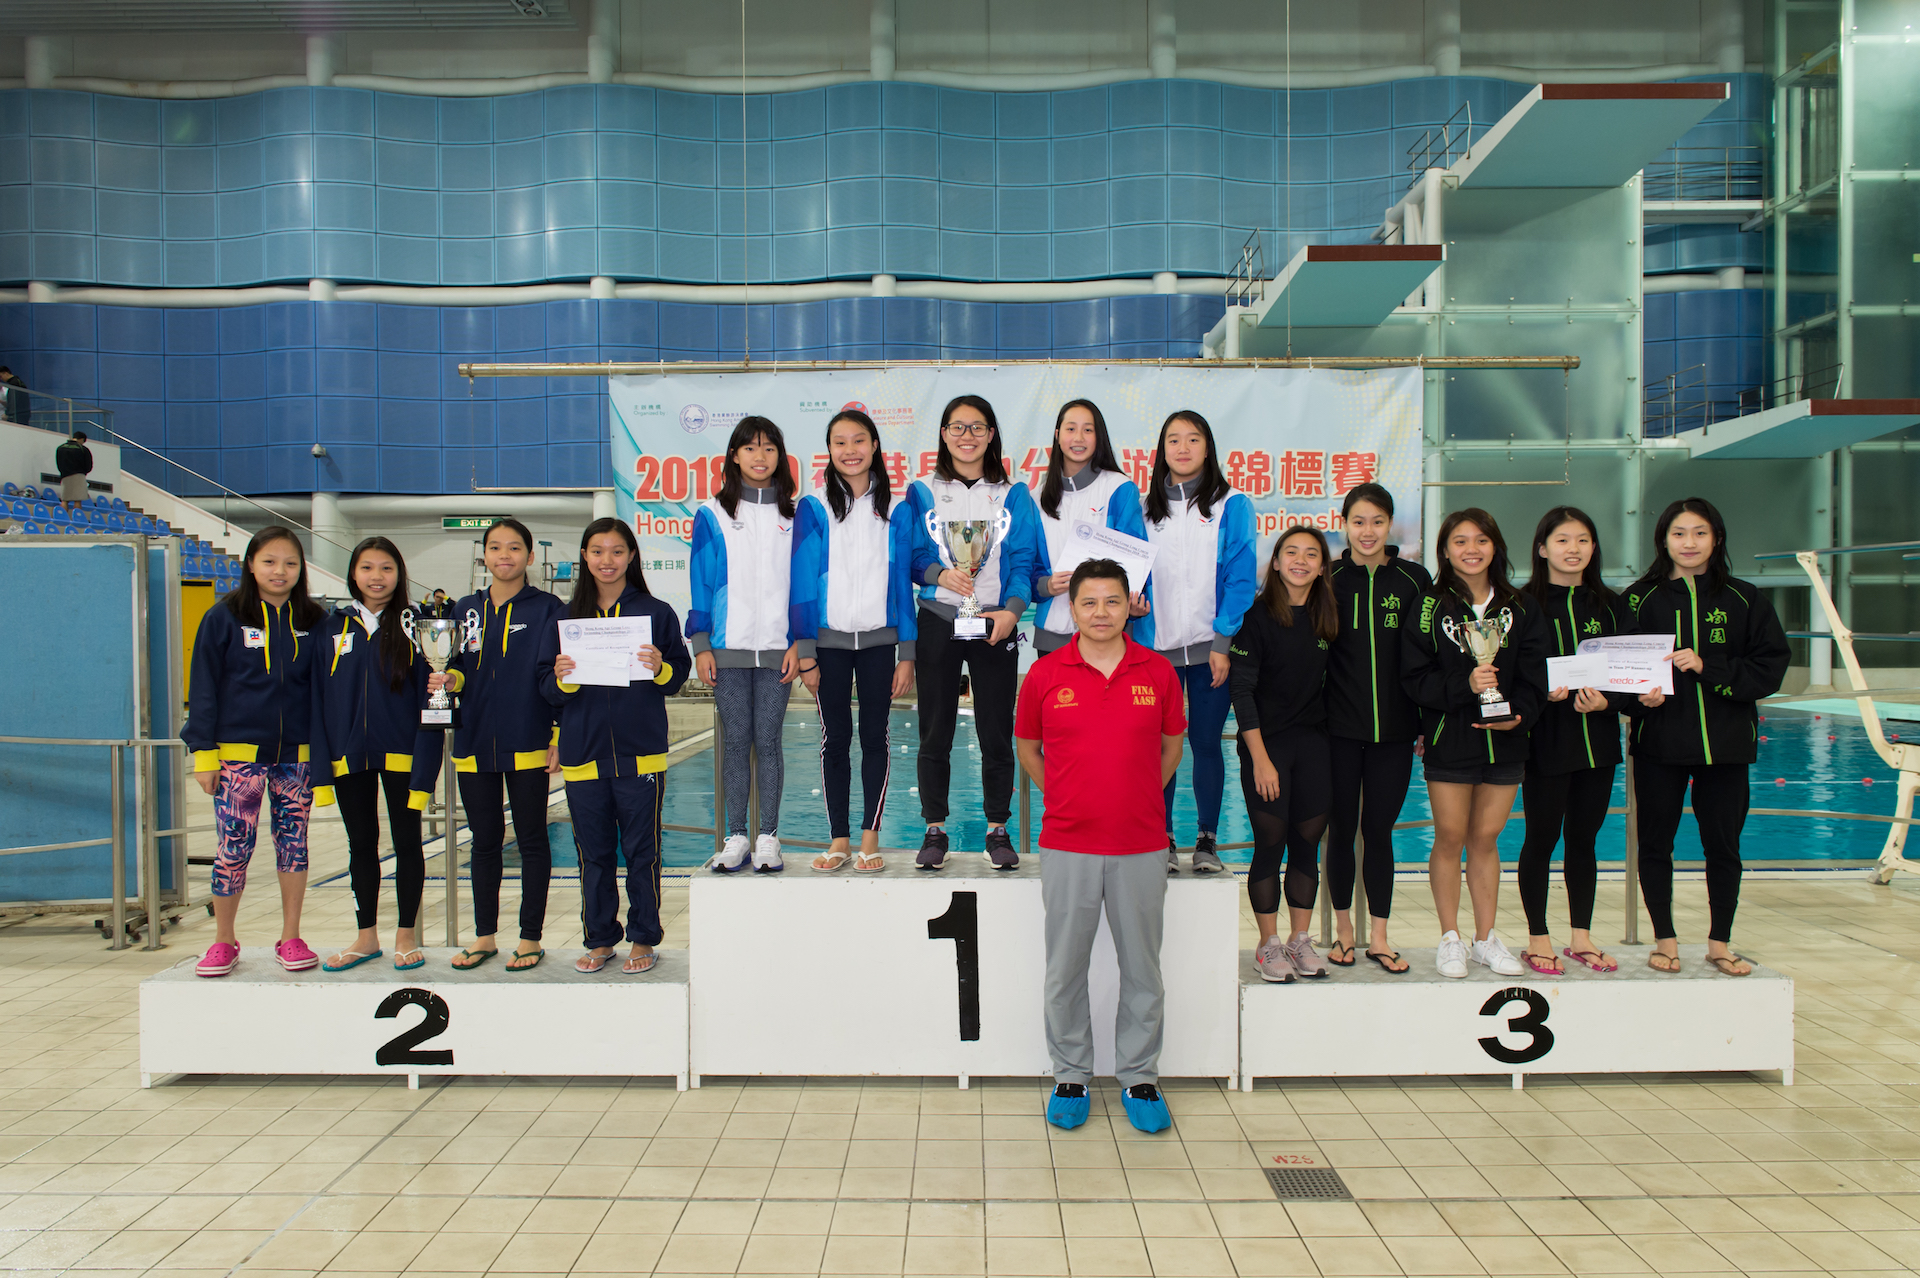 Win Tin Swimming Club - 2018 LCC 3